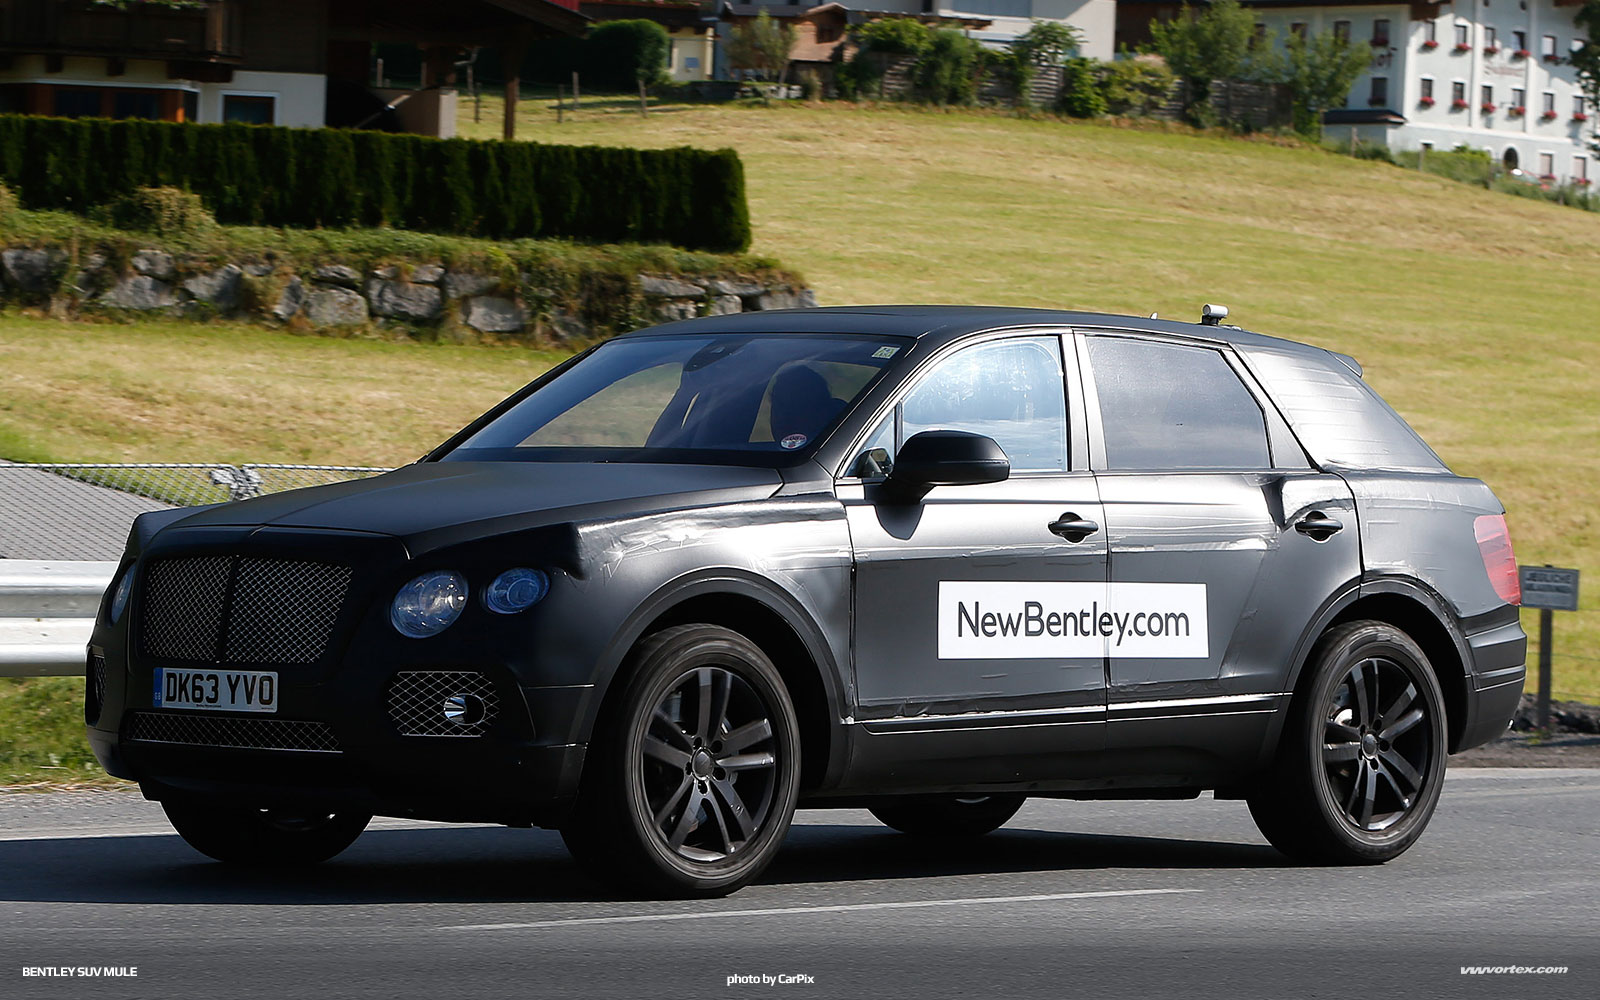 bentley-suv-mule-spy-photos-375